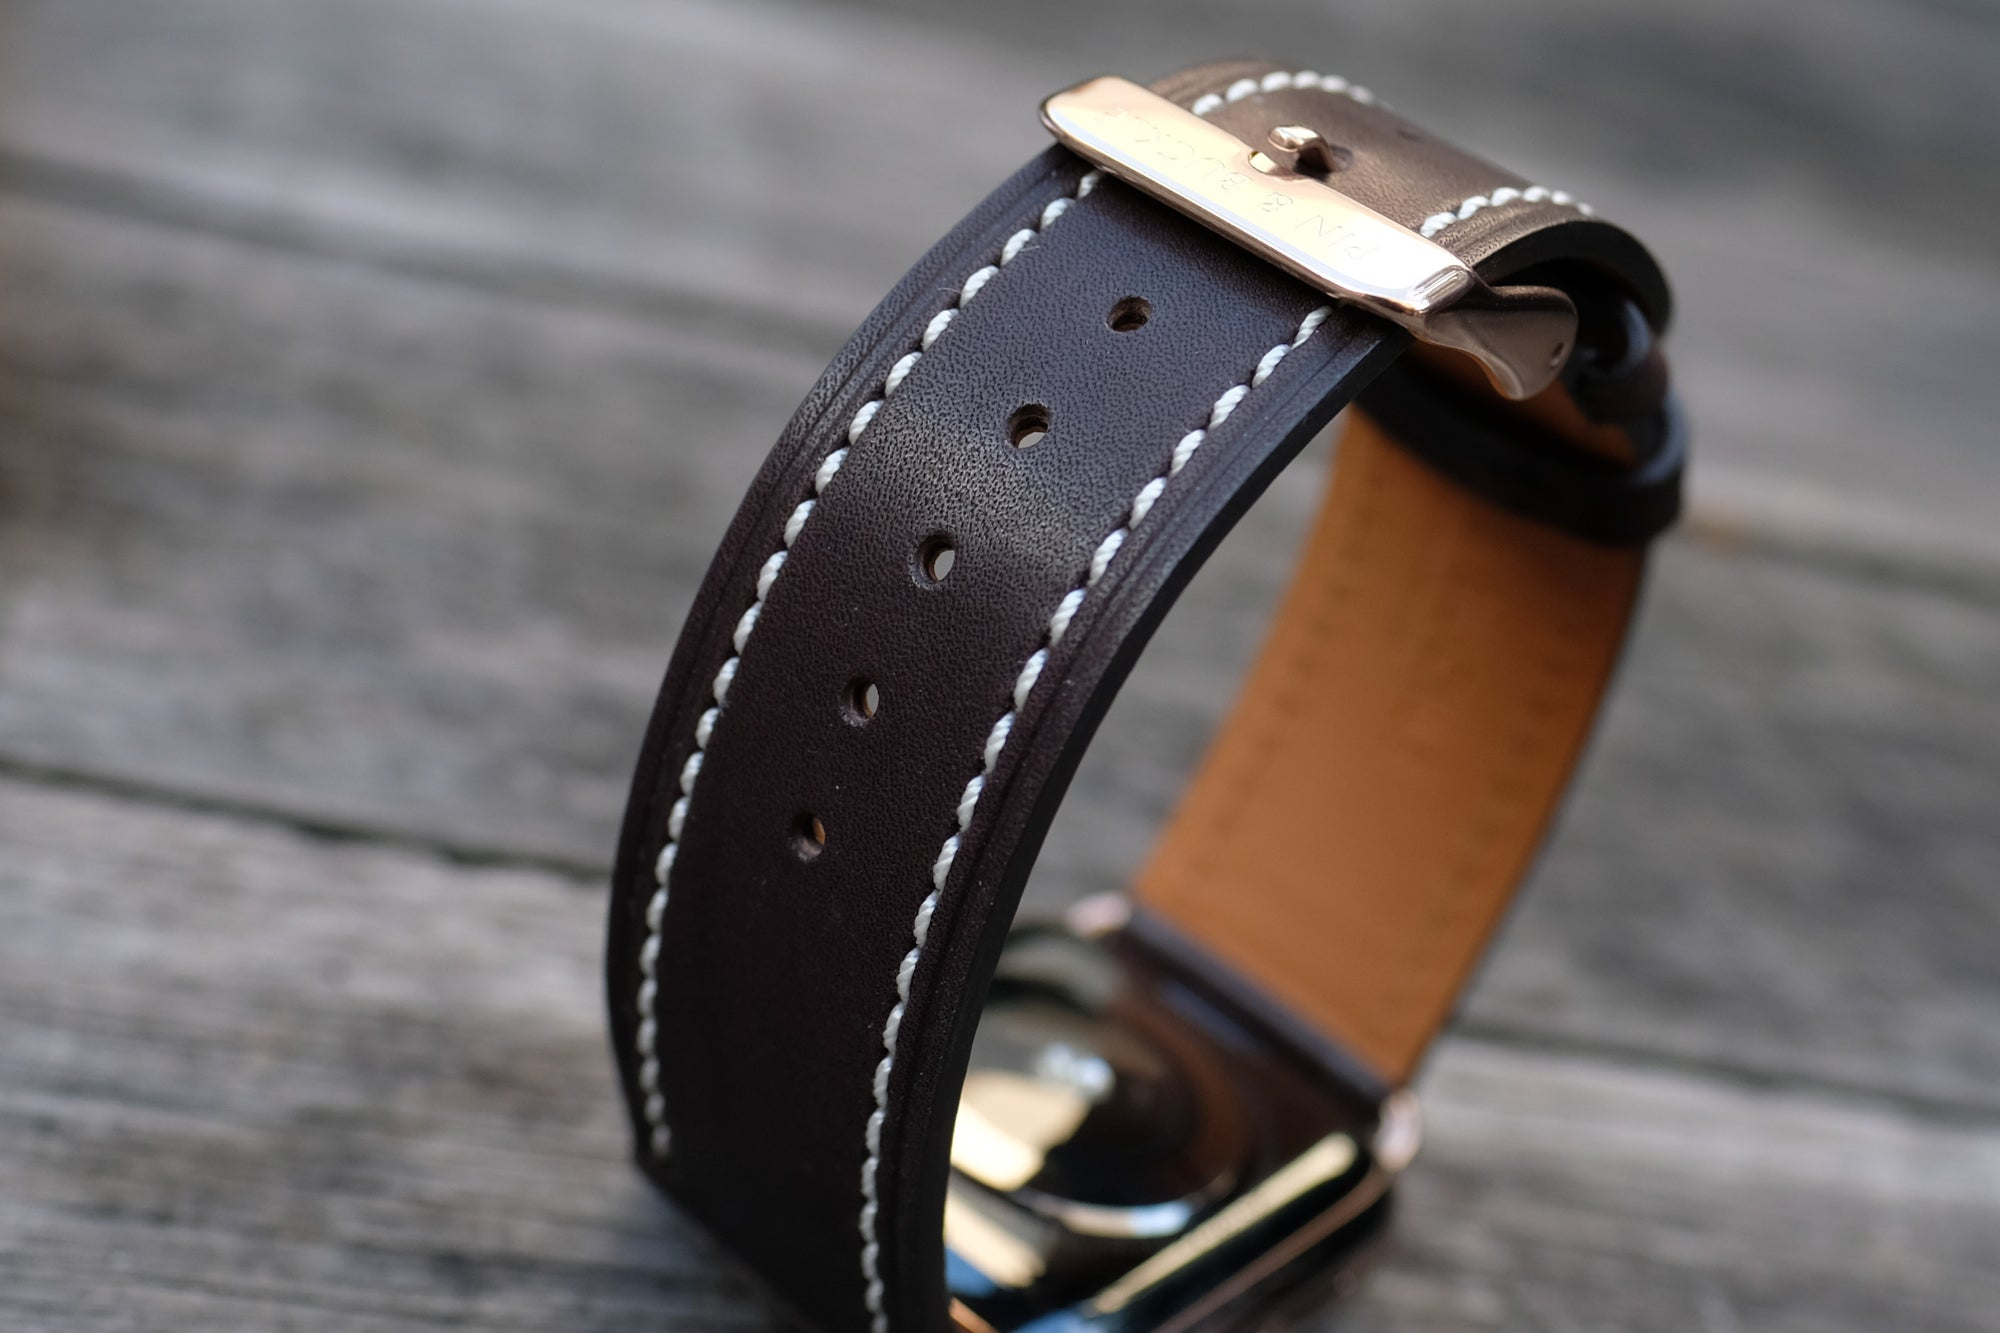 Barenia Leather Apple Watch Bands by Pin & Buckle - Full-Grain Barenia Leather - Dark Chocolate